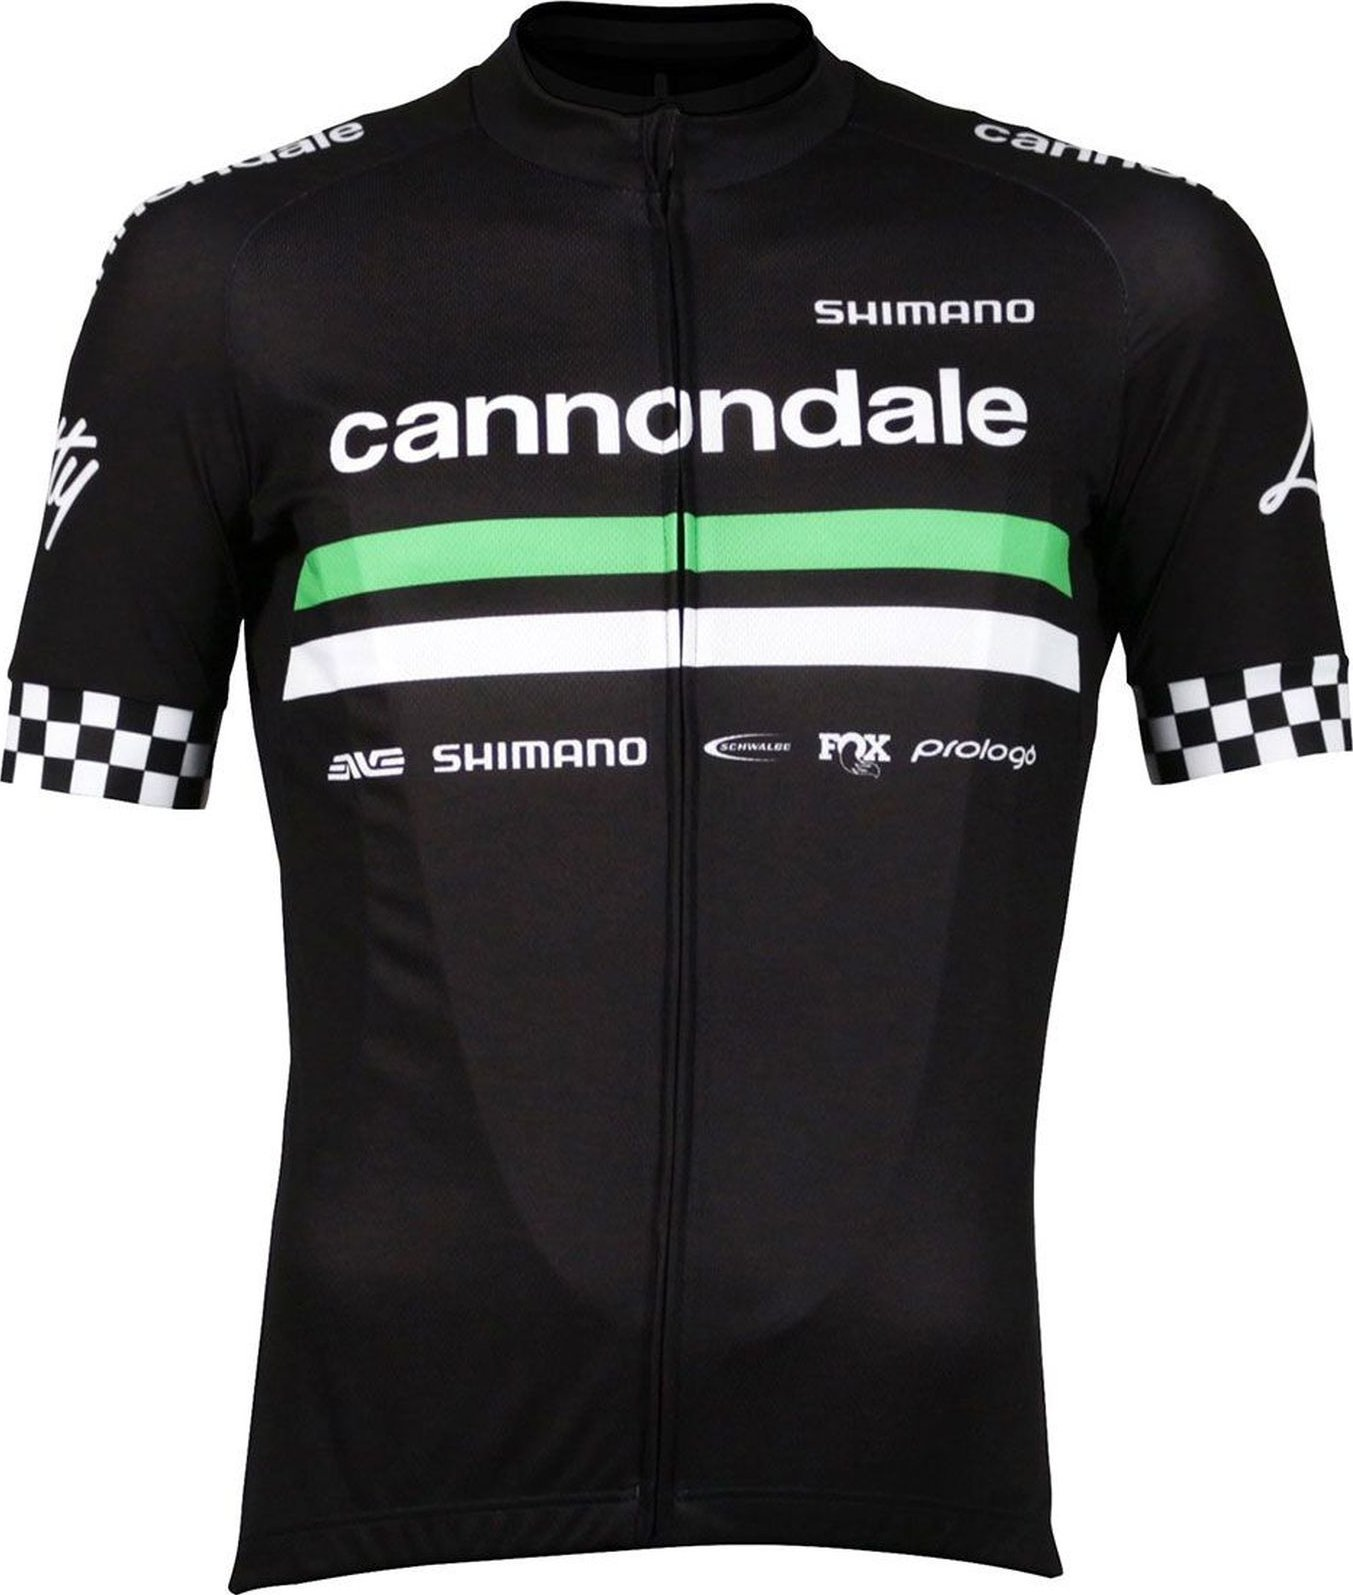 Cannondale Shimano CFR Replica Jersey Team